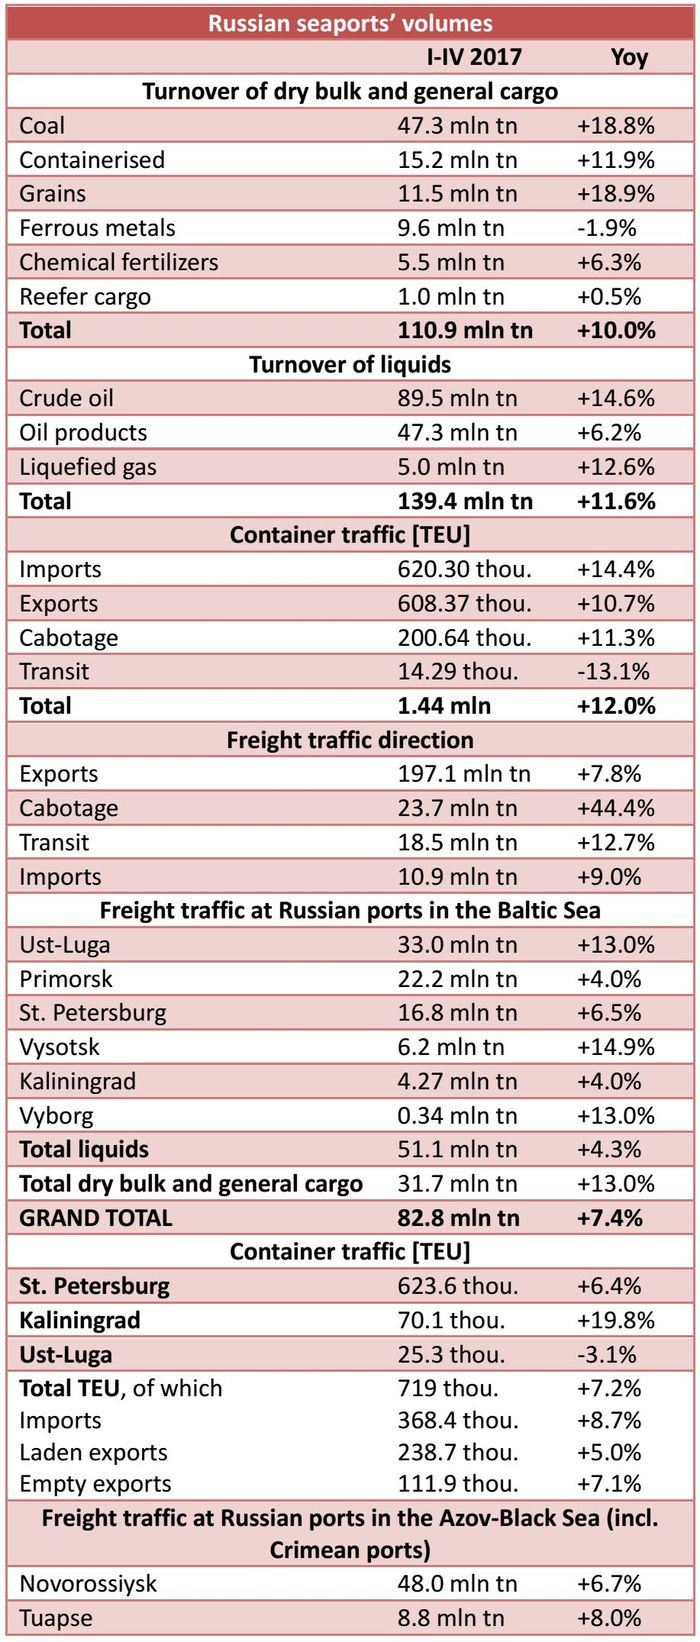 With 82.8 mln tn handled (+7.4% year-on-year), the Baltic Sea holds the biggest share in Russian ports' overall freight handlings within the reported period.